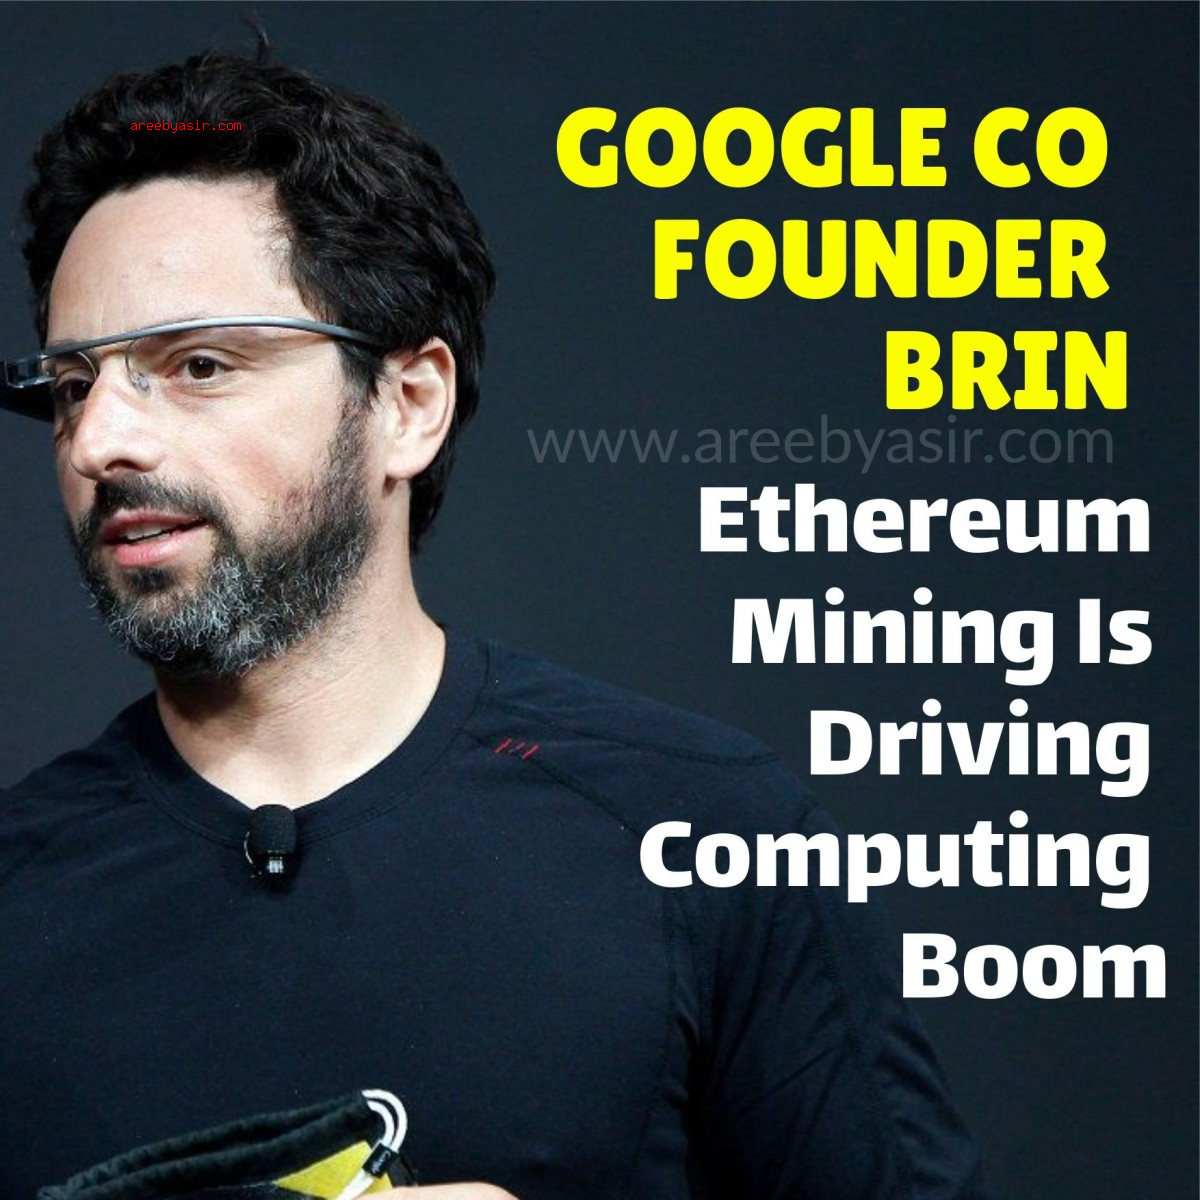 Google's Co-Founder Sergey Brin Says Ethereum Mining Driving Computer Boom and Renaissance